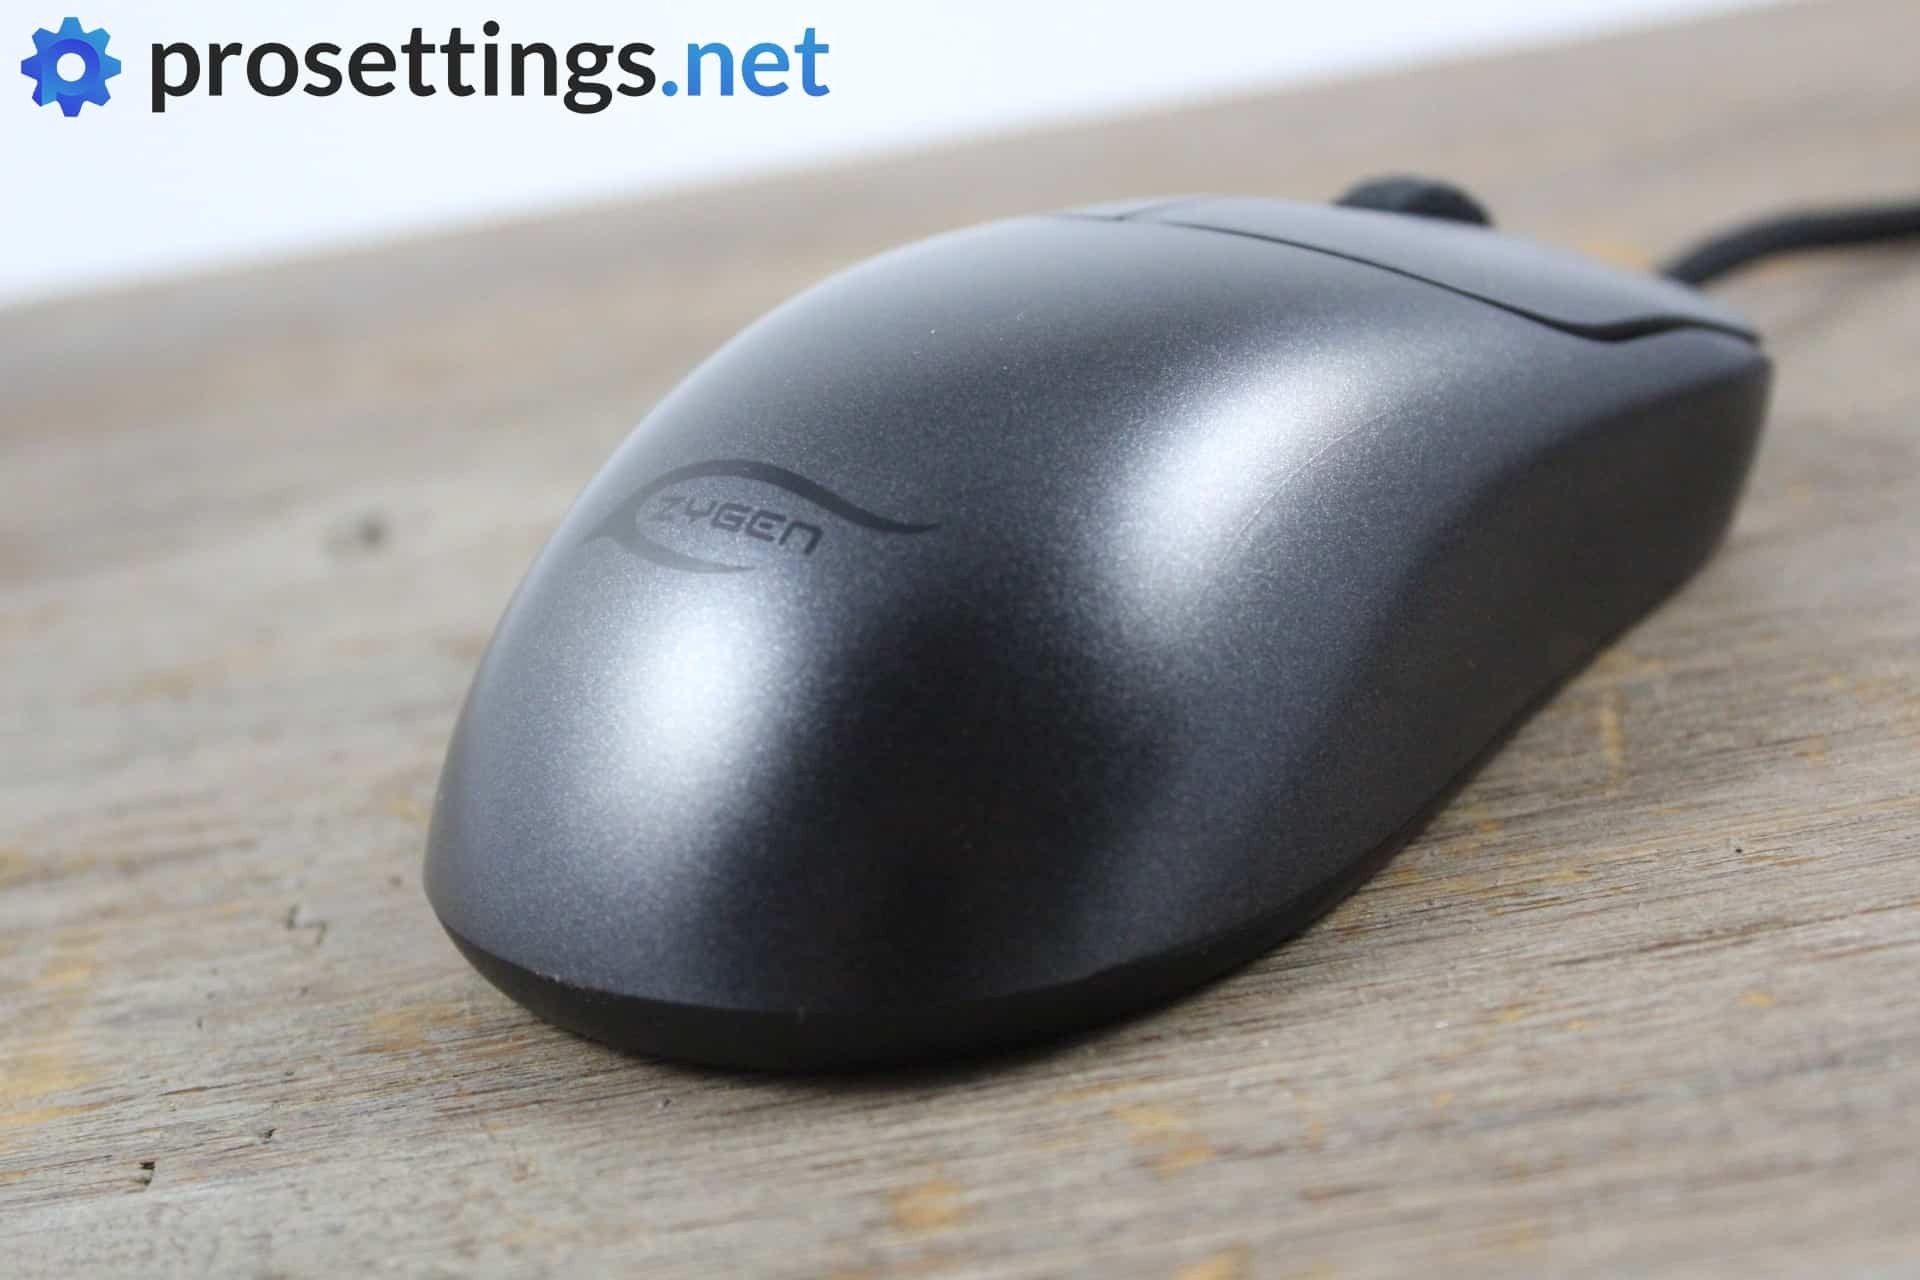 Vaxee Zygen NP-01 Review Mouse